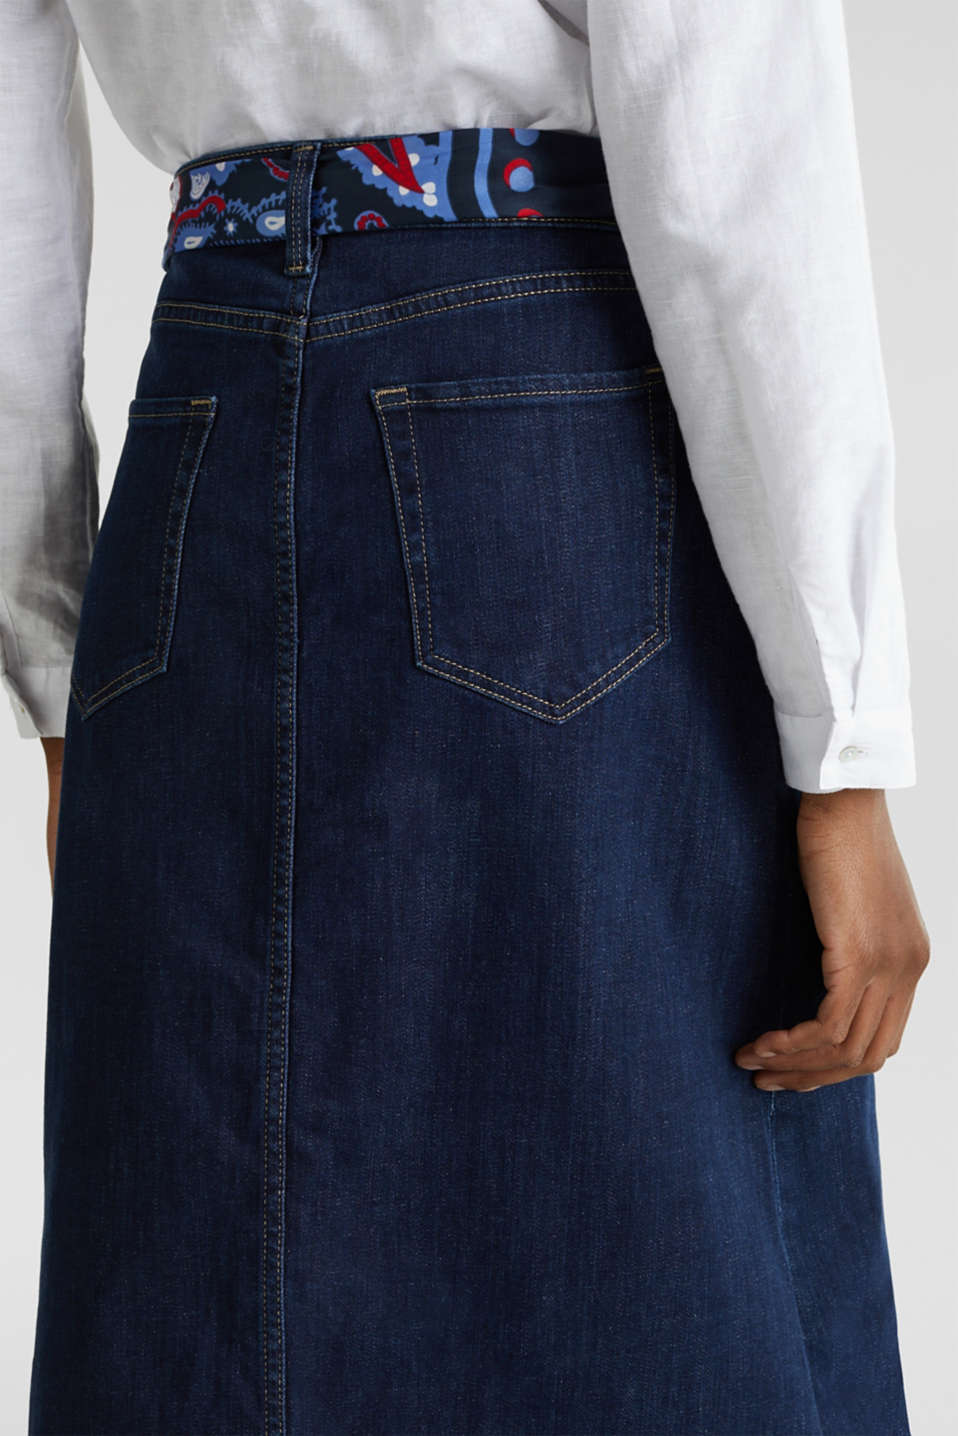 Denim skirt with a bandana tie-around belt, BLUE RINSE, detail image number 5